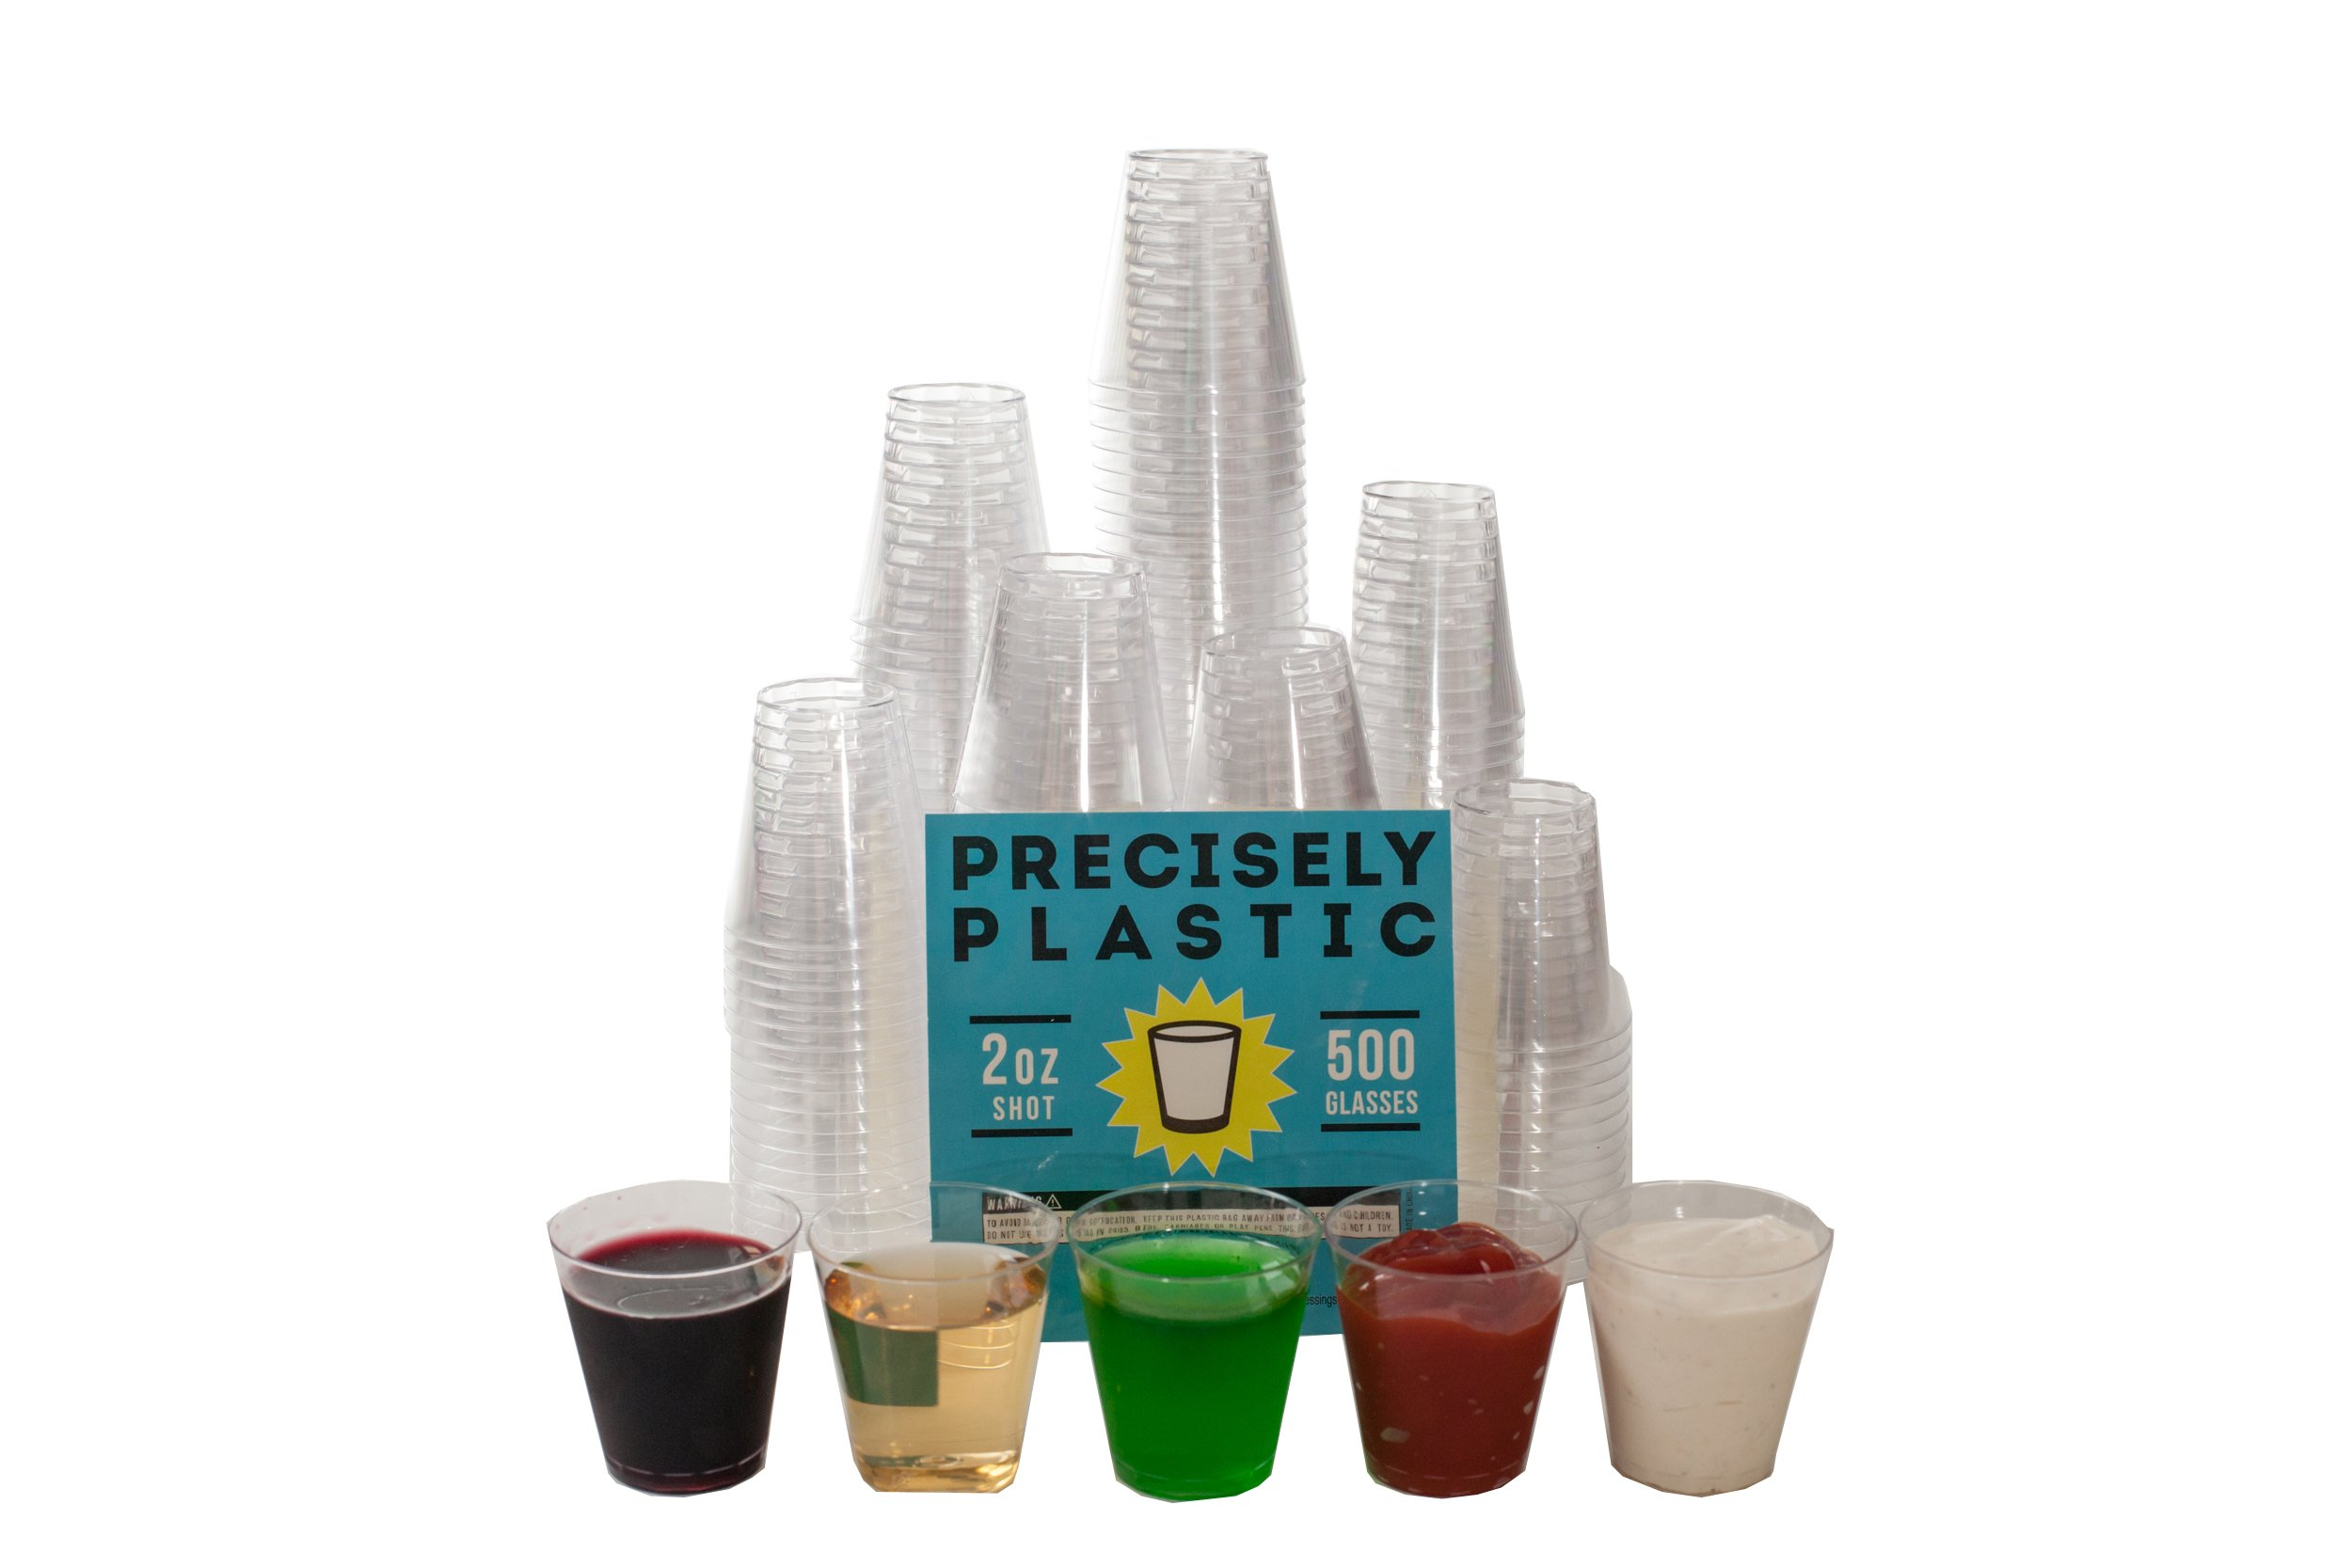 500 Shot Glasses Premium 2oz Clear Plastic Disposable Cups, Perfect Container for Jello Shots, Condiments, Tasting, Sauce, Dipping, Samples by Precisely Plastic